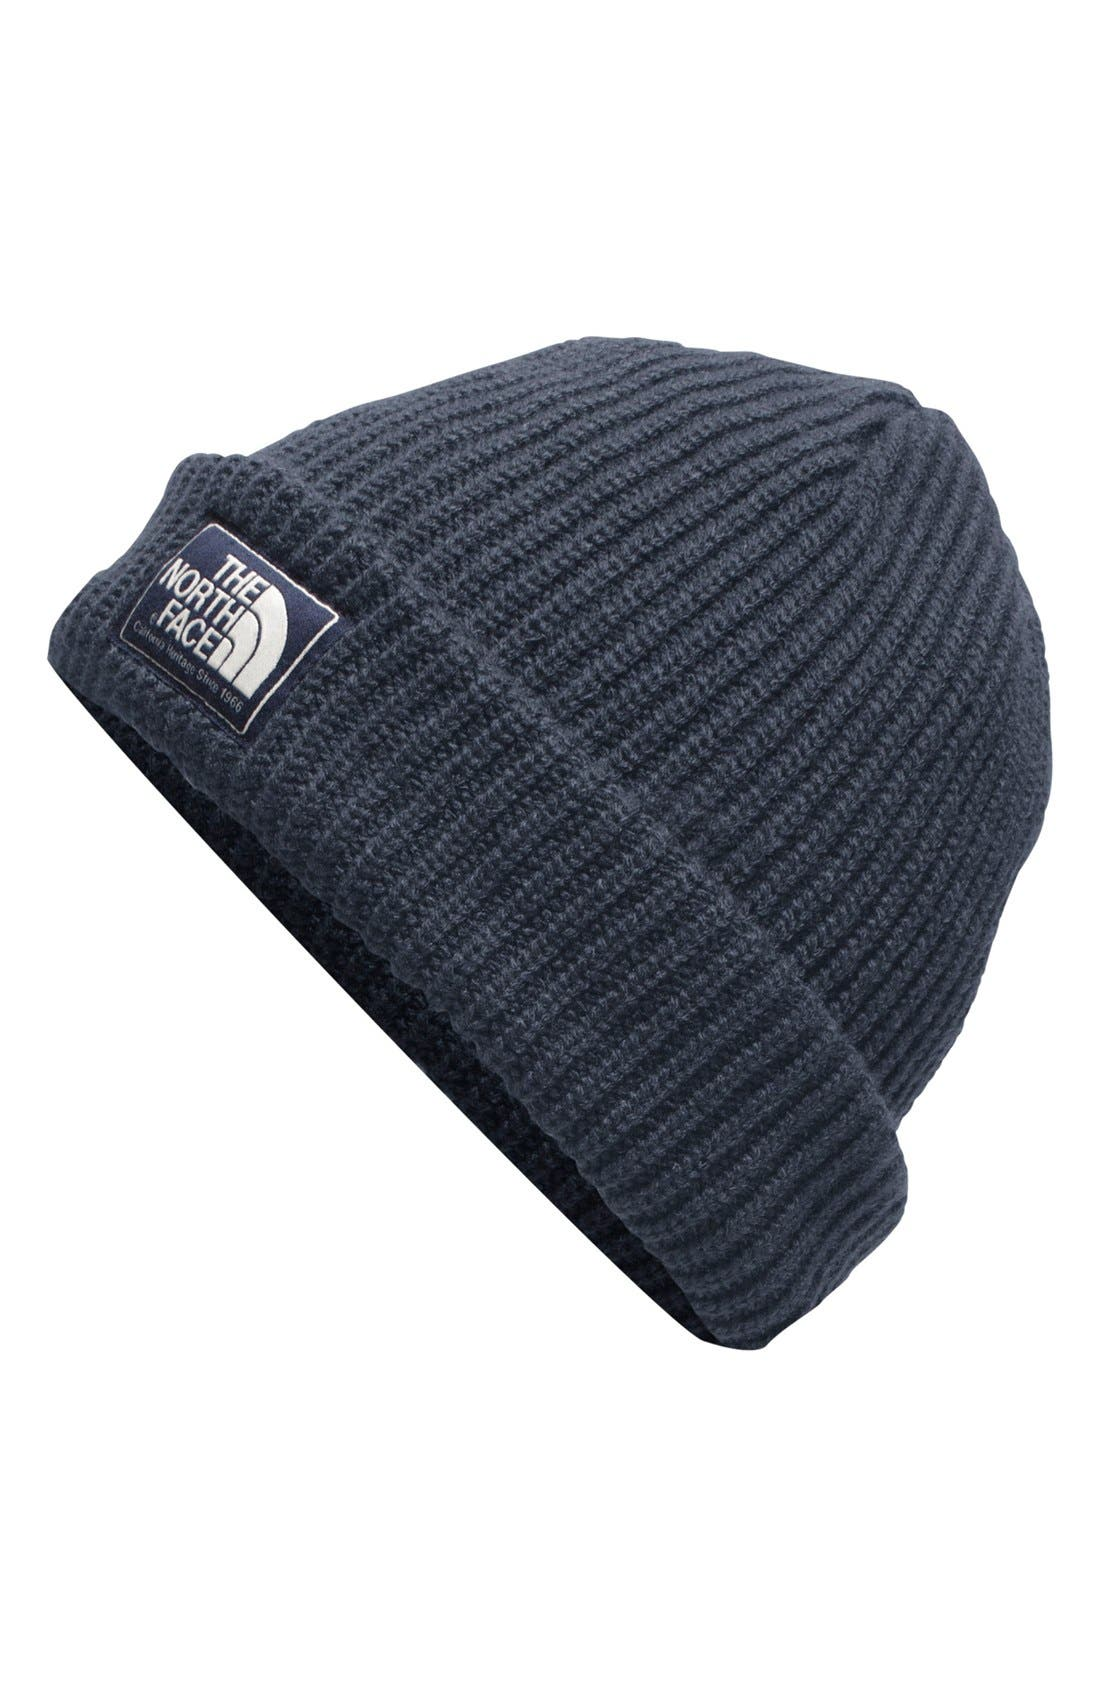 Alternate Image 1 Selected - The North Face 'Salty Dog' Beanie